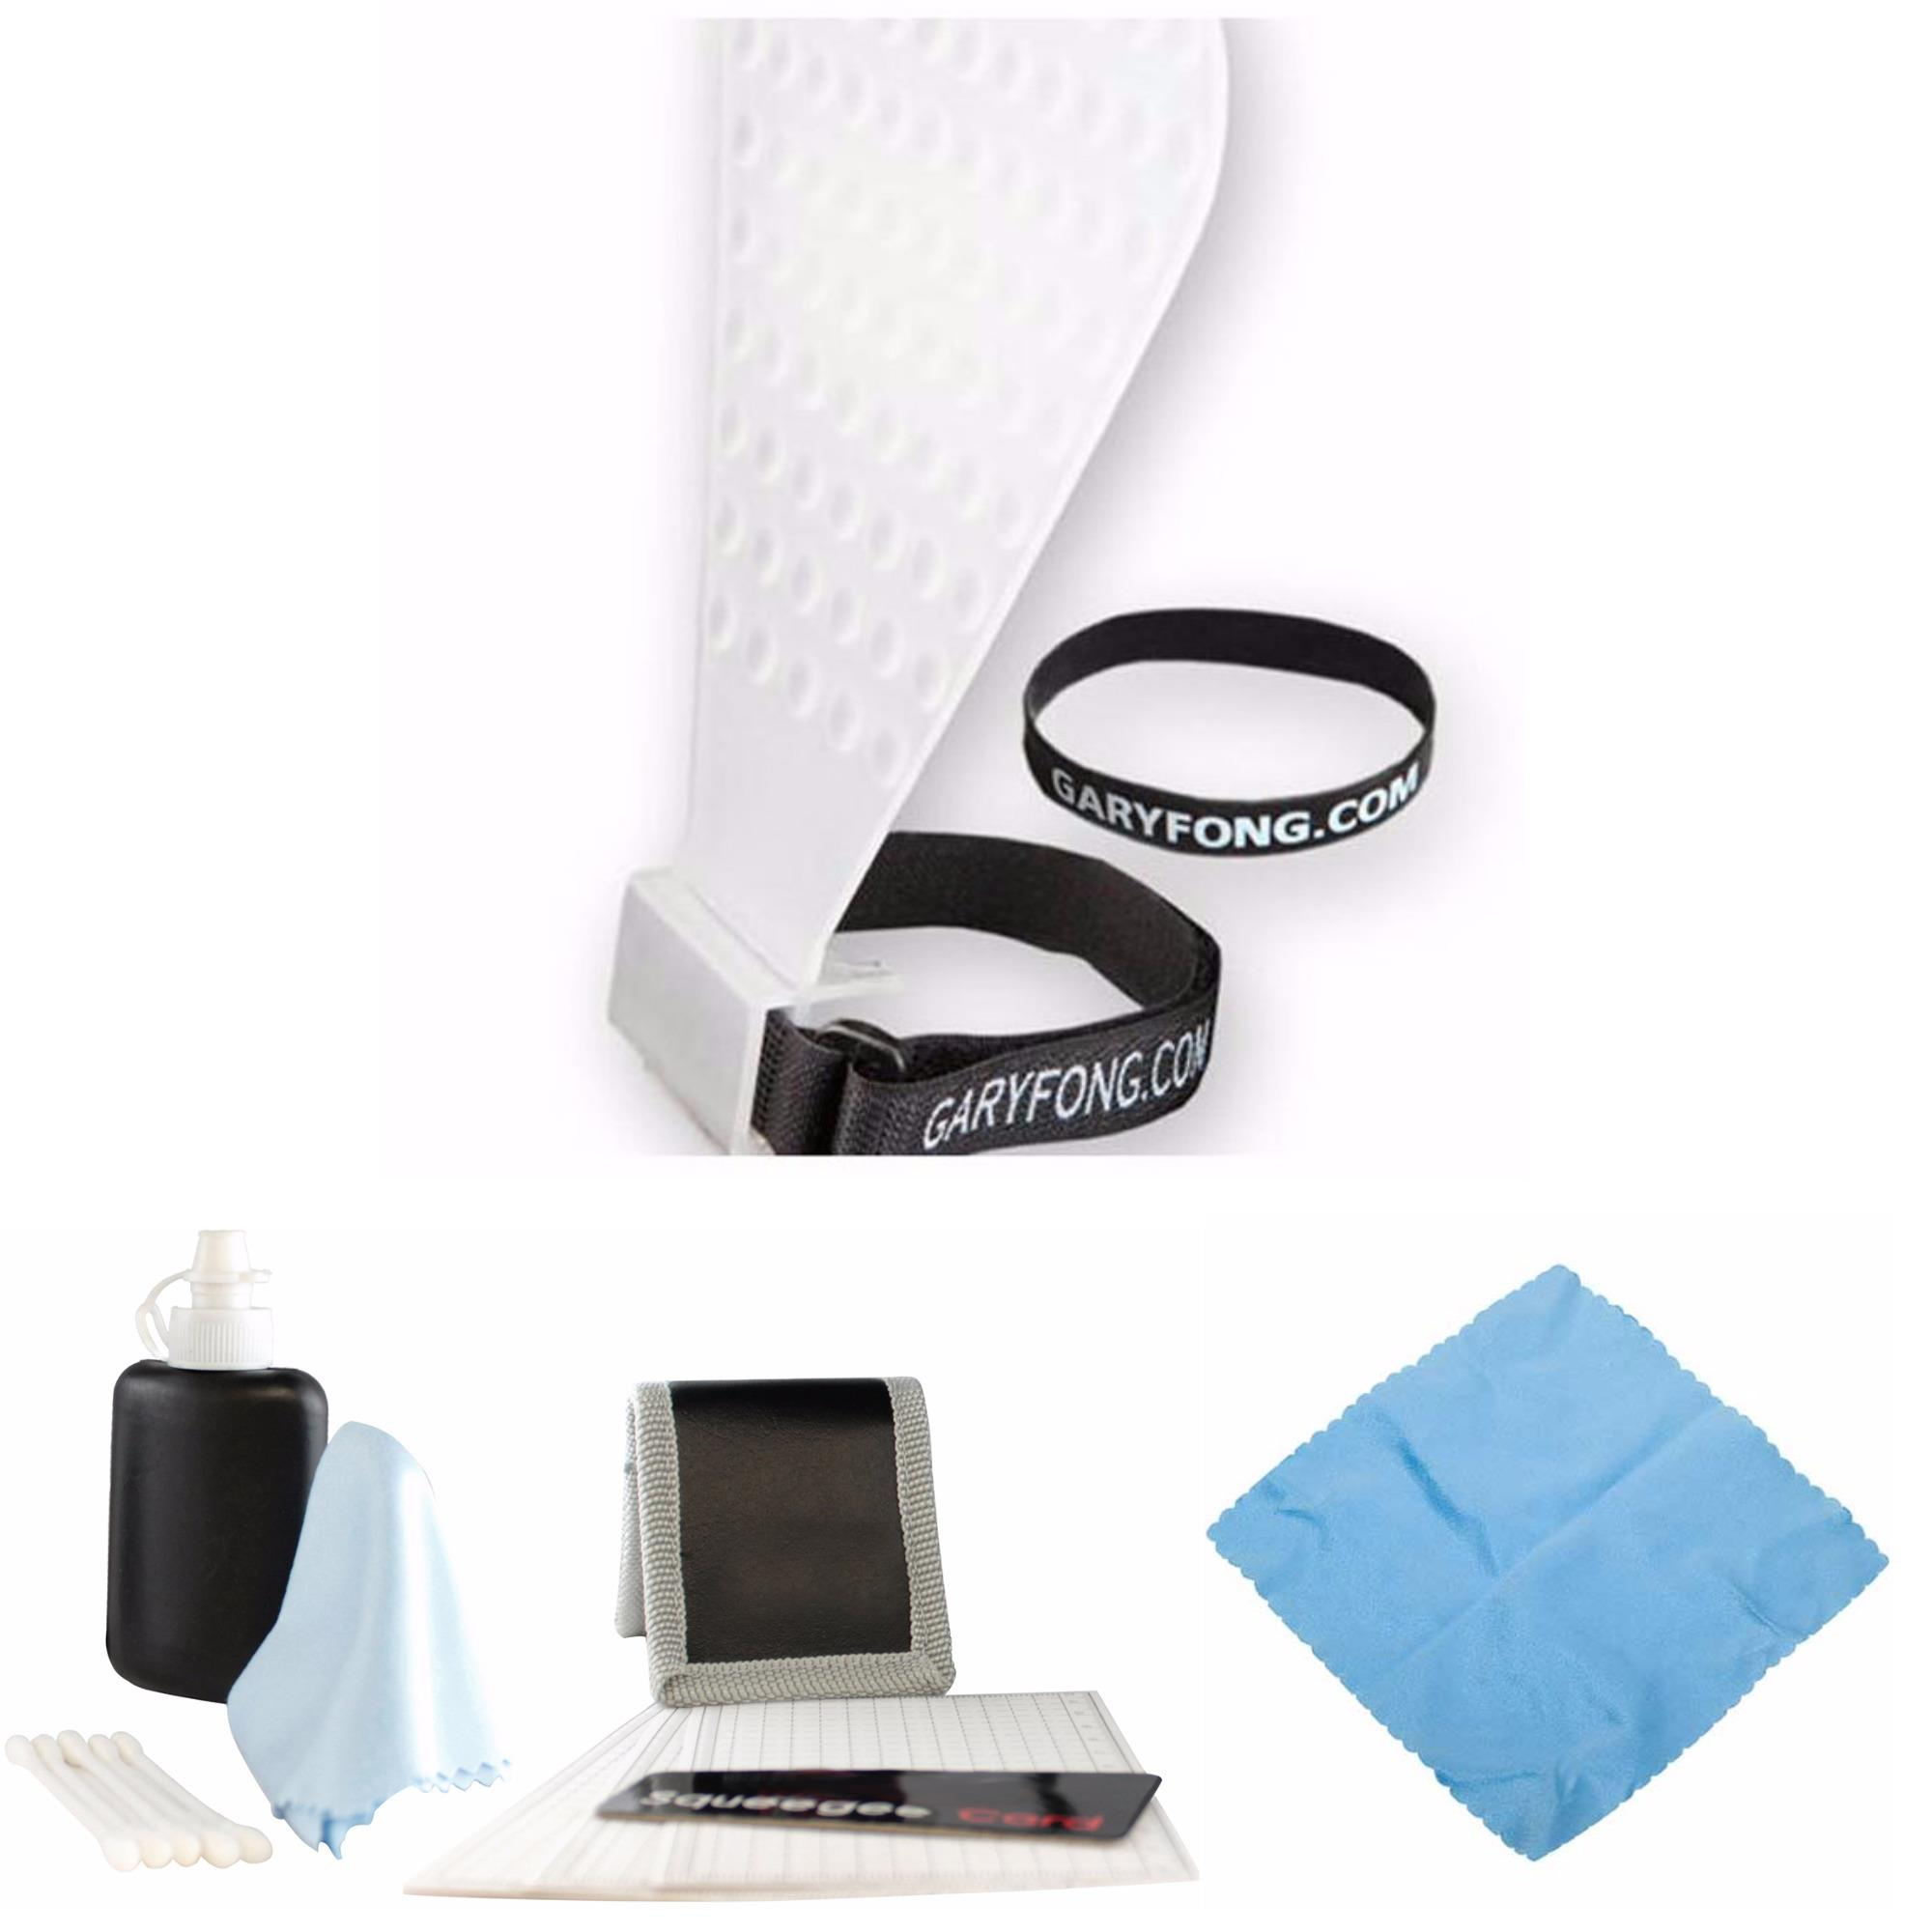 Gary Fong Portable and Compact LightBlade Flash Diffuser and Cleaning Bundle